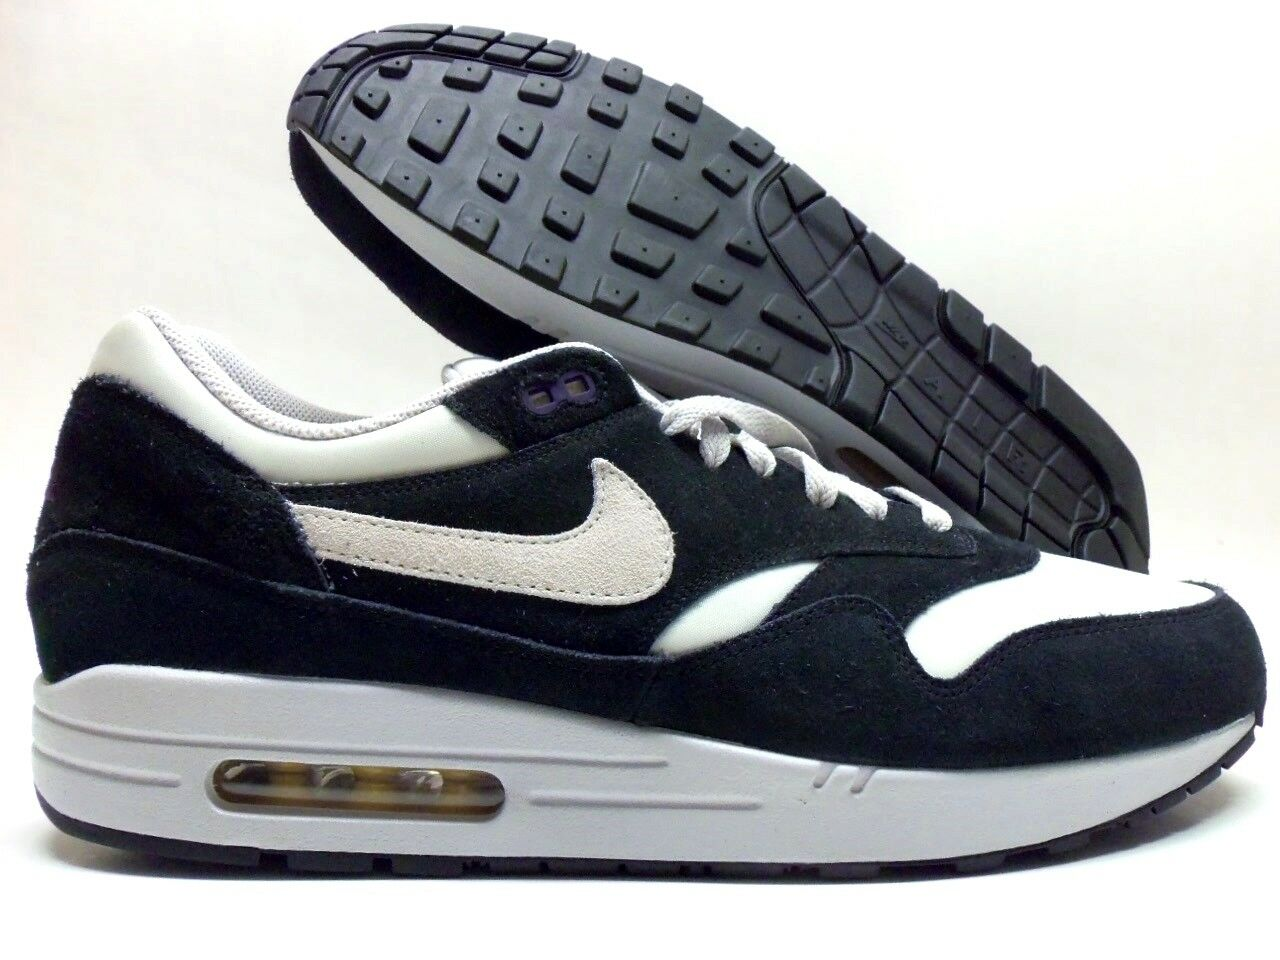 NIKE AIR MAX 1 ID BLACK/SUMMIT WHITE-BLACK SIZE MEN'S 13 [433213-998]